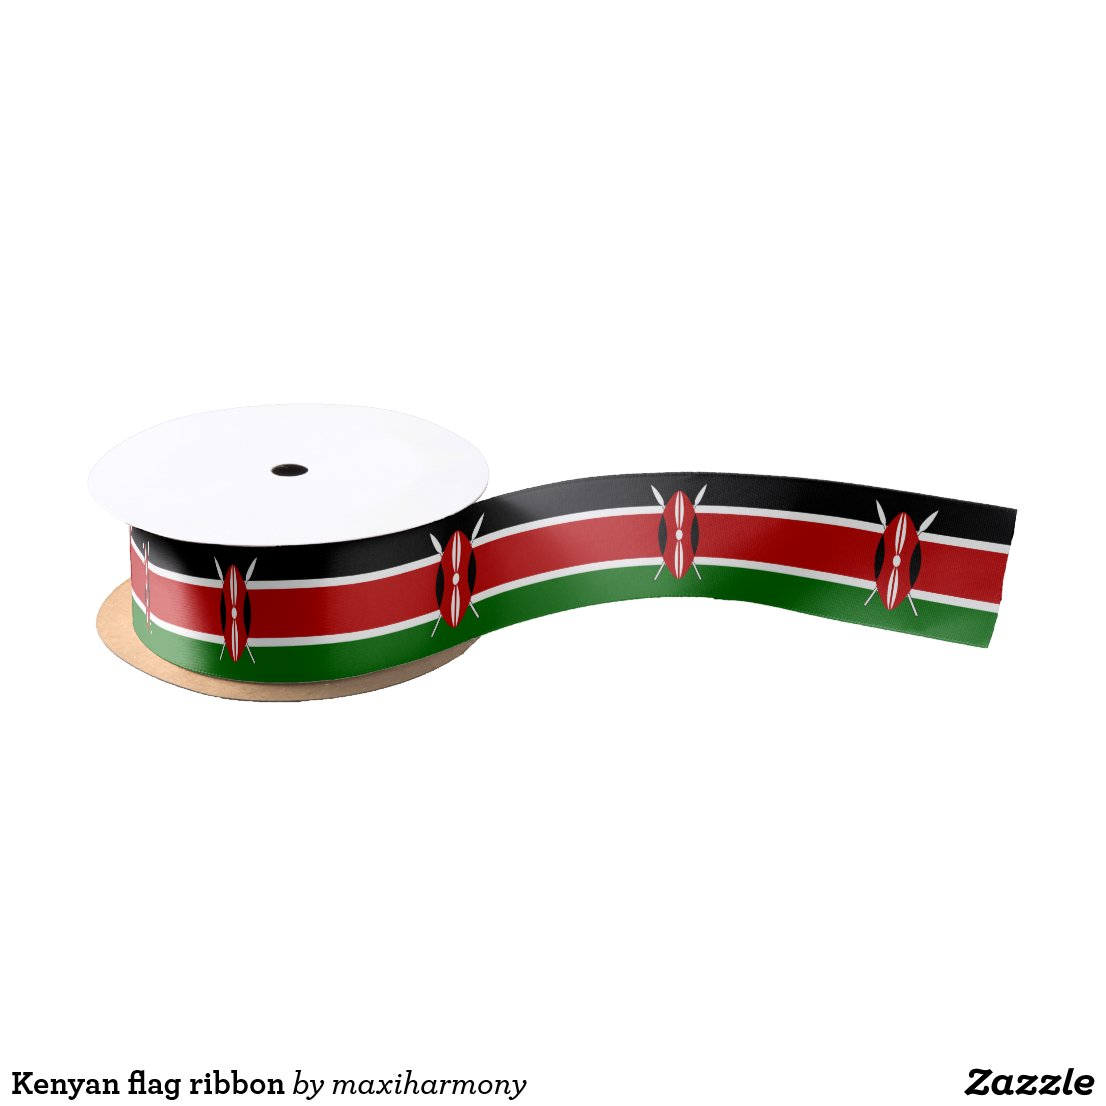 Kenyan flag ribbon